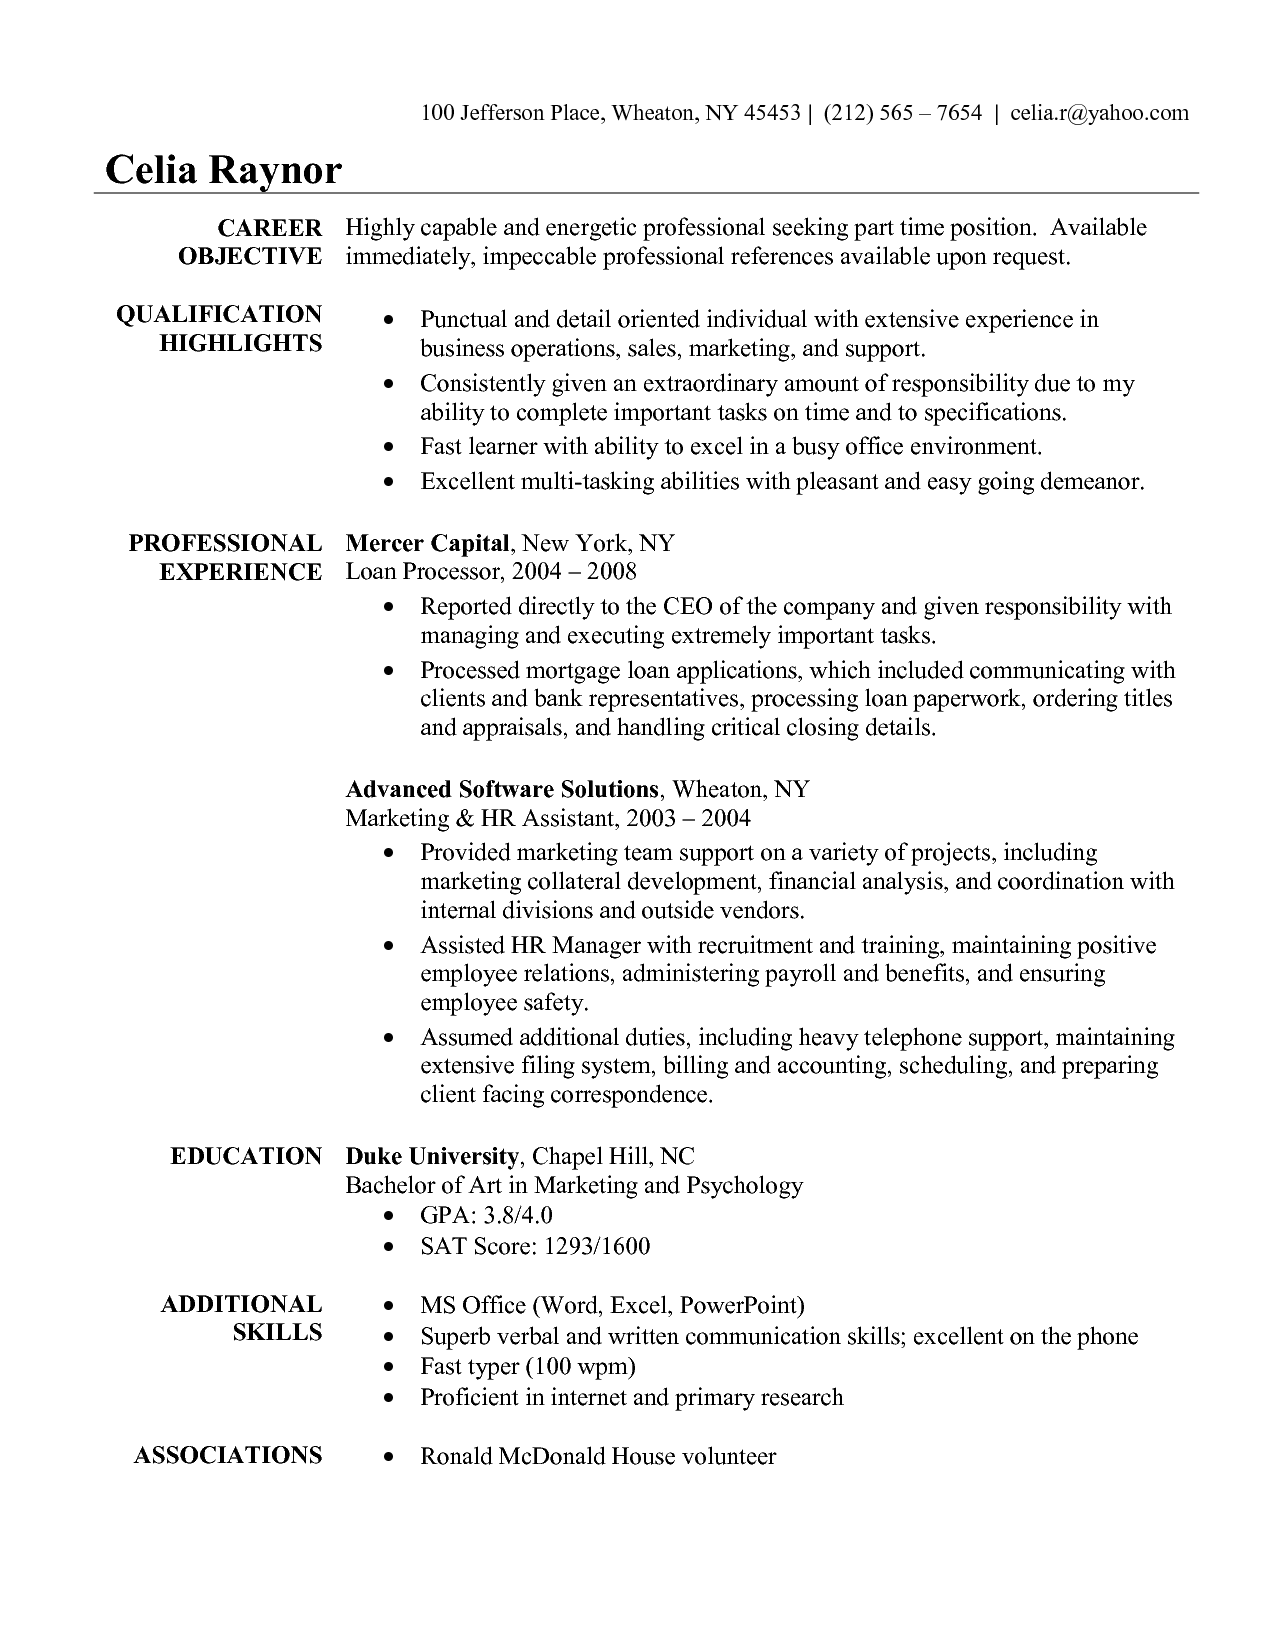 Administrative Secretary Resume Cool Resume Sample For Administrative Assistant Resume Samples For .